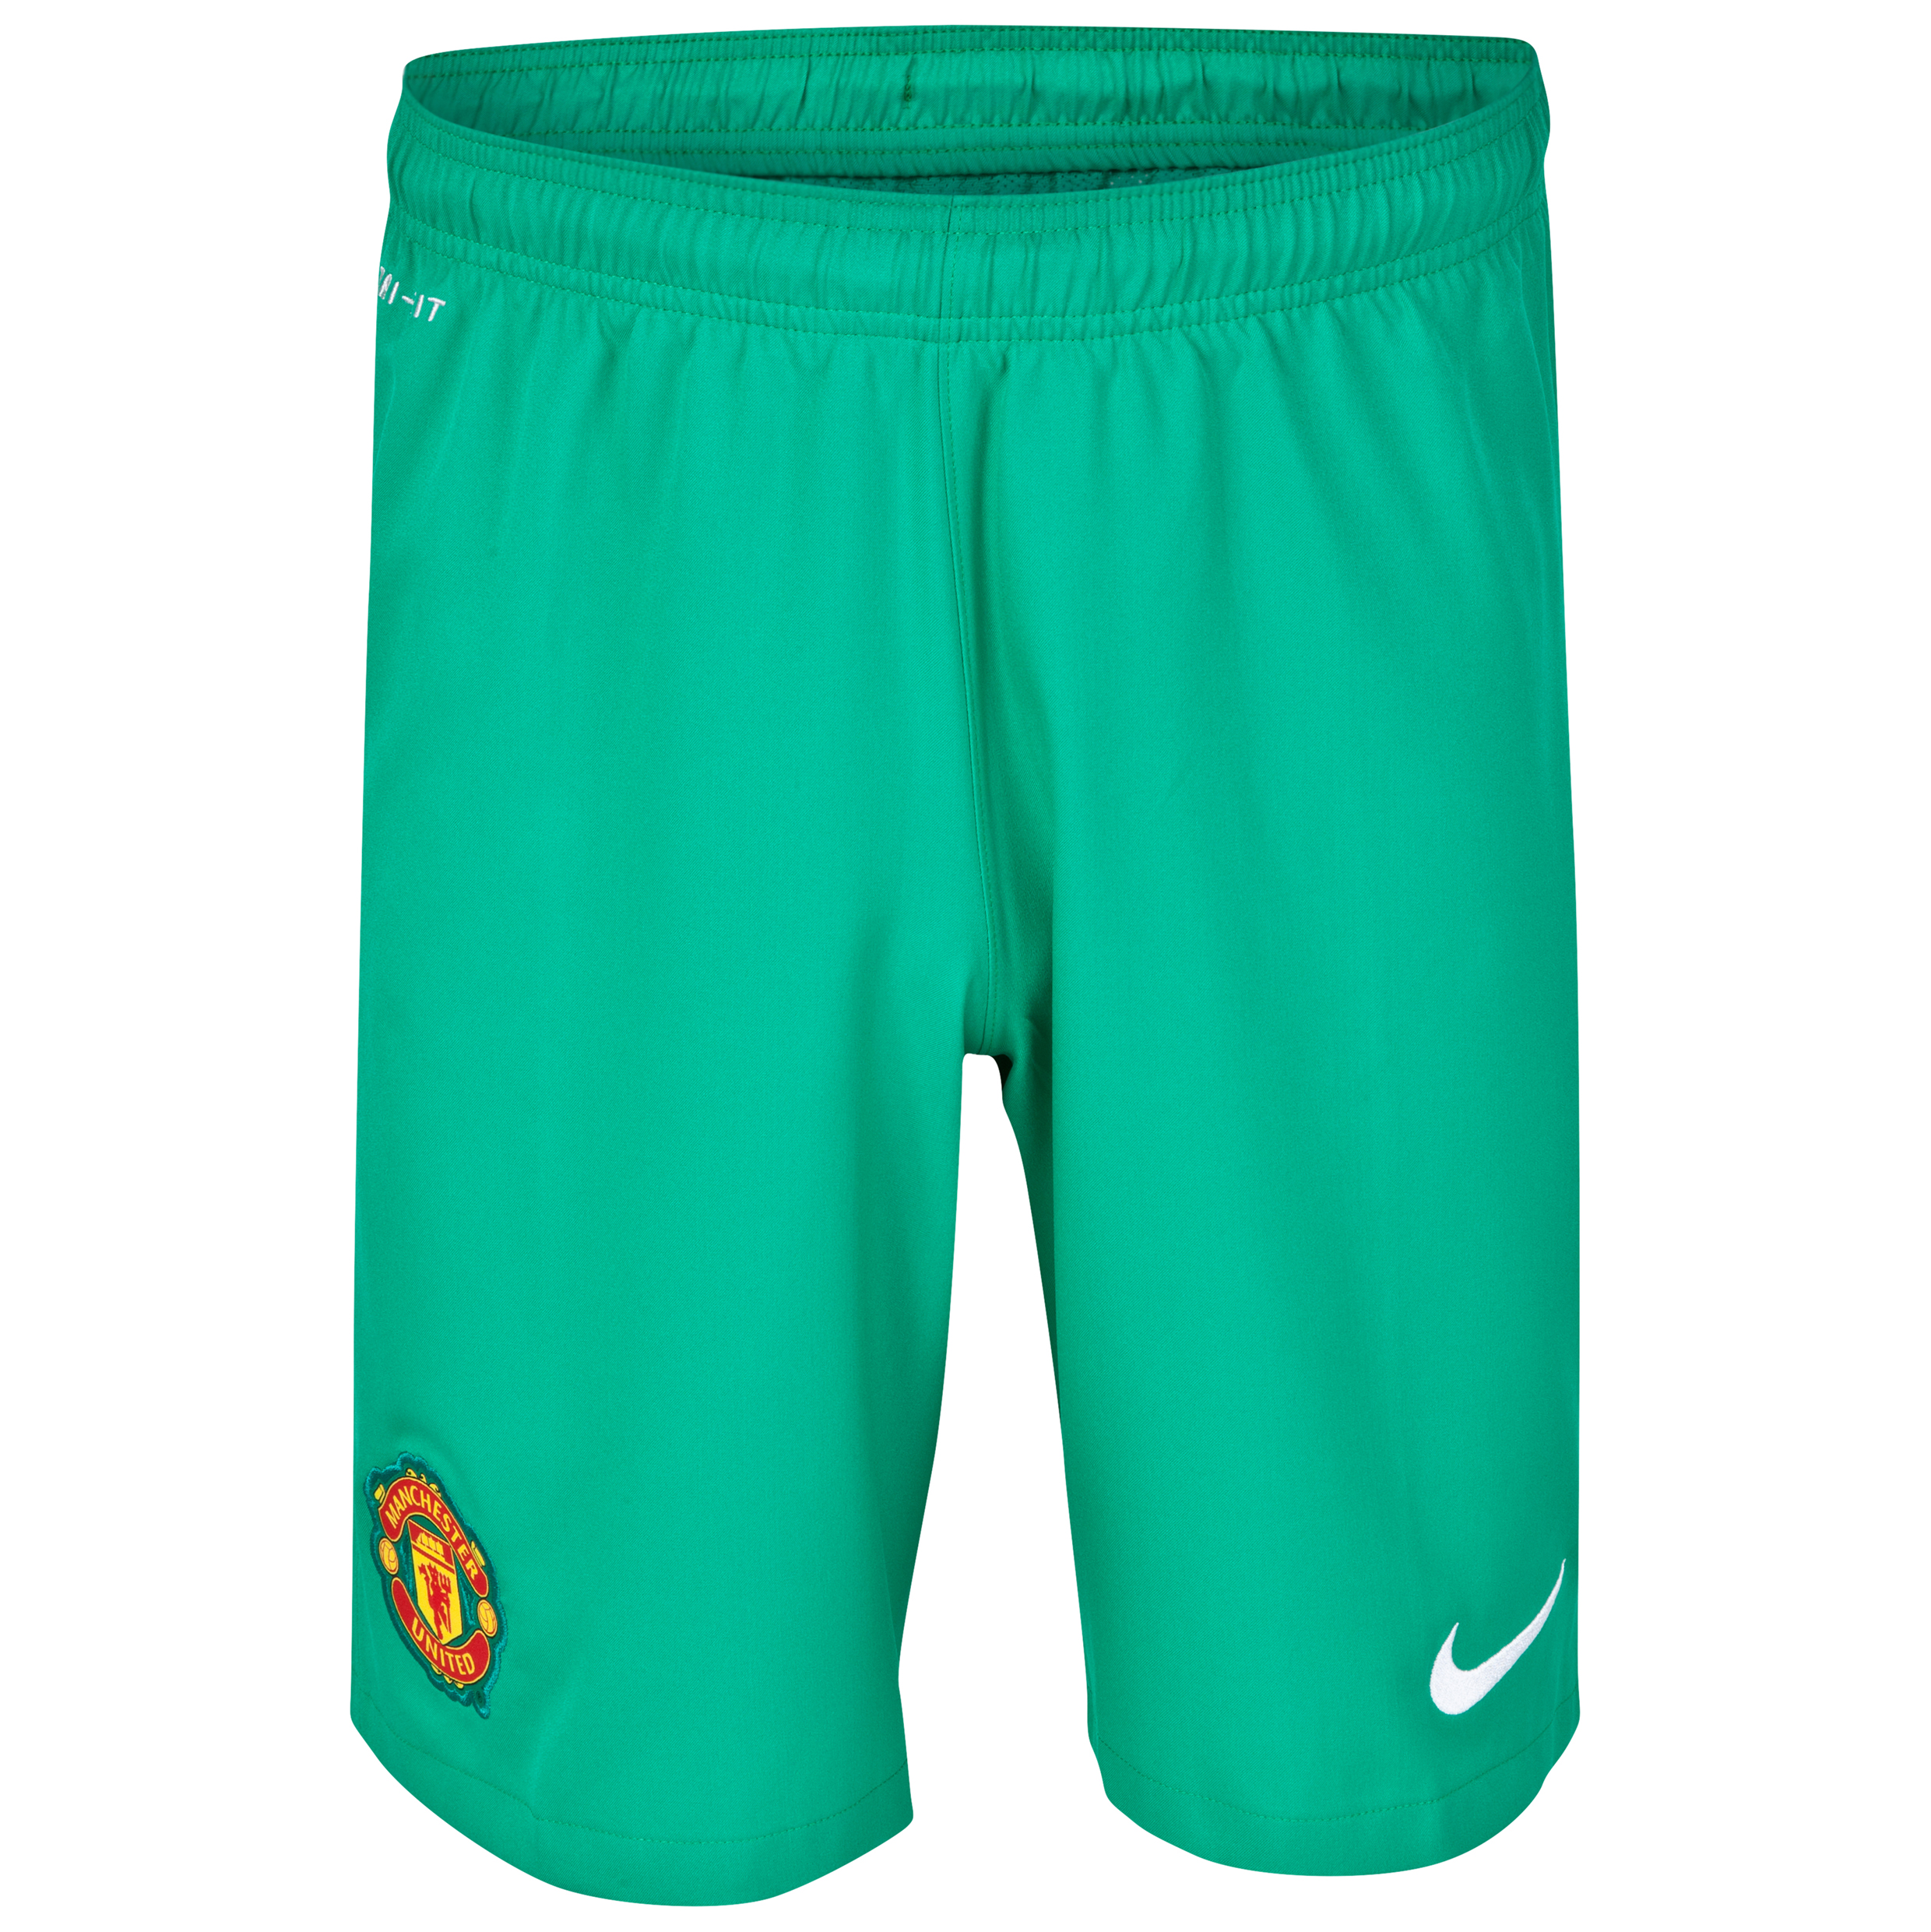 Manchester United Goalkeeper Shorts 2014/15